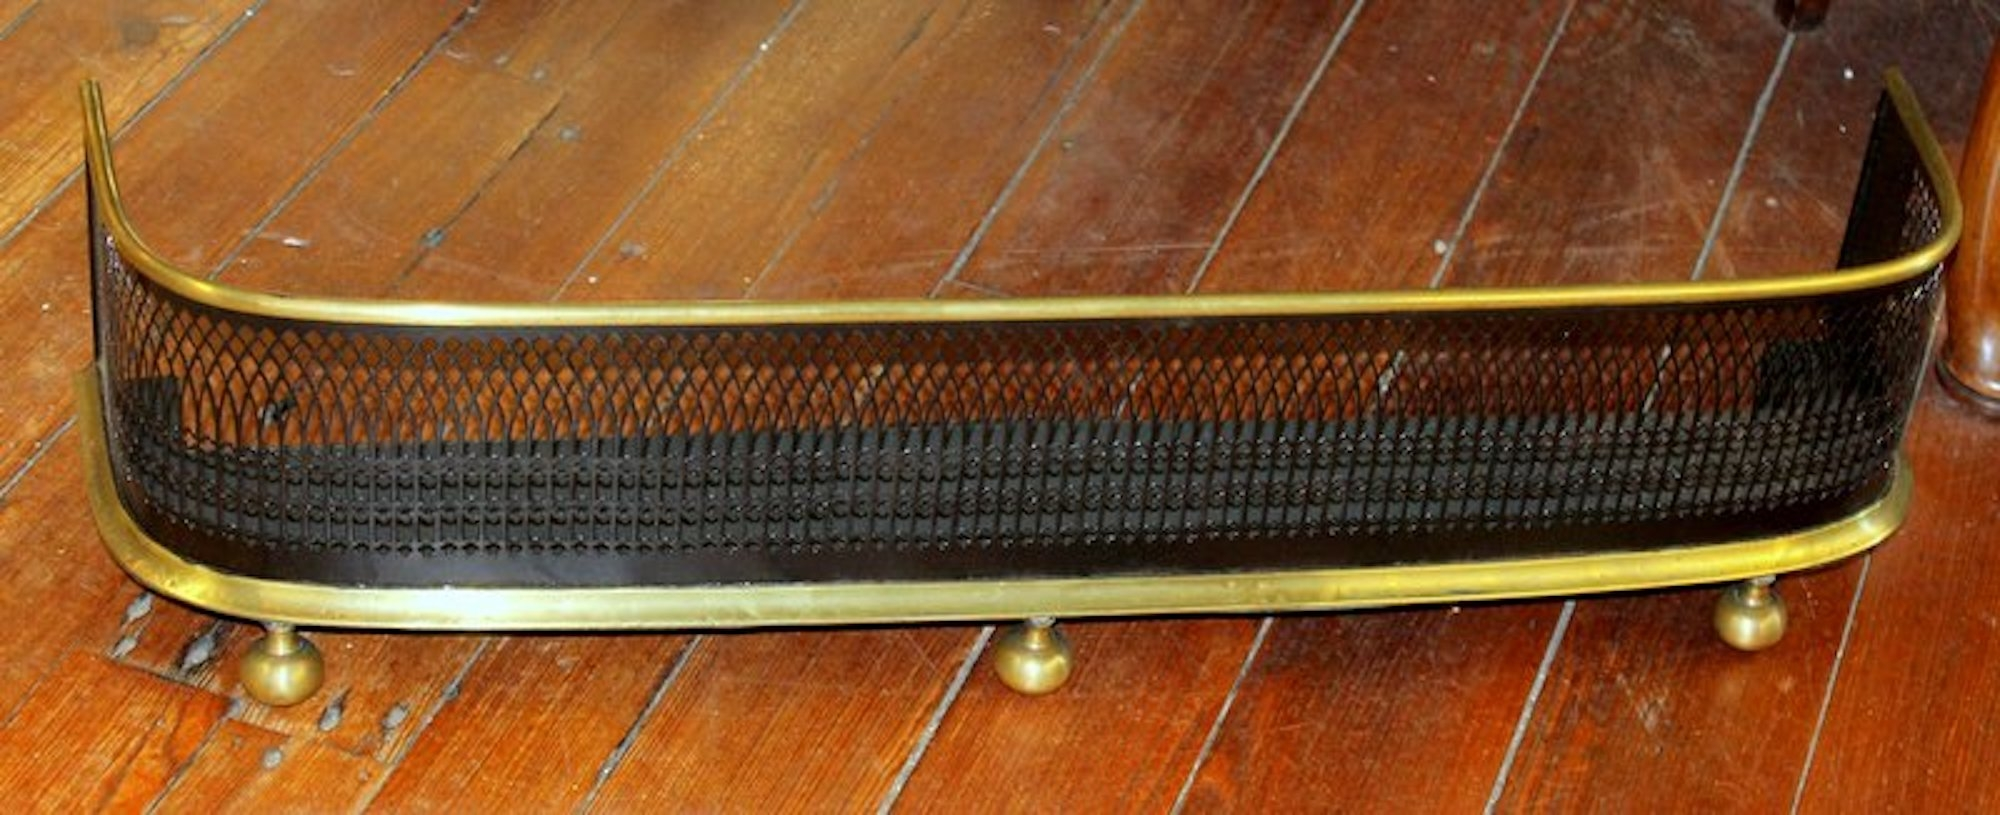 cast products accessories fireplace sampson small grate iron